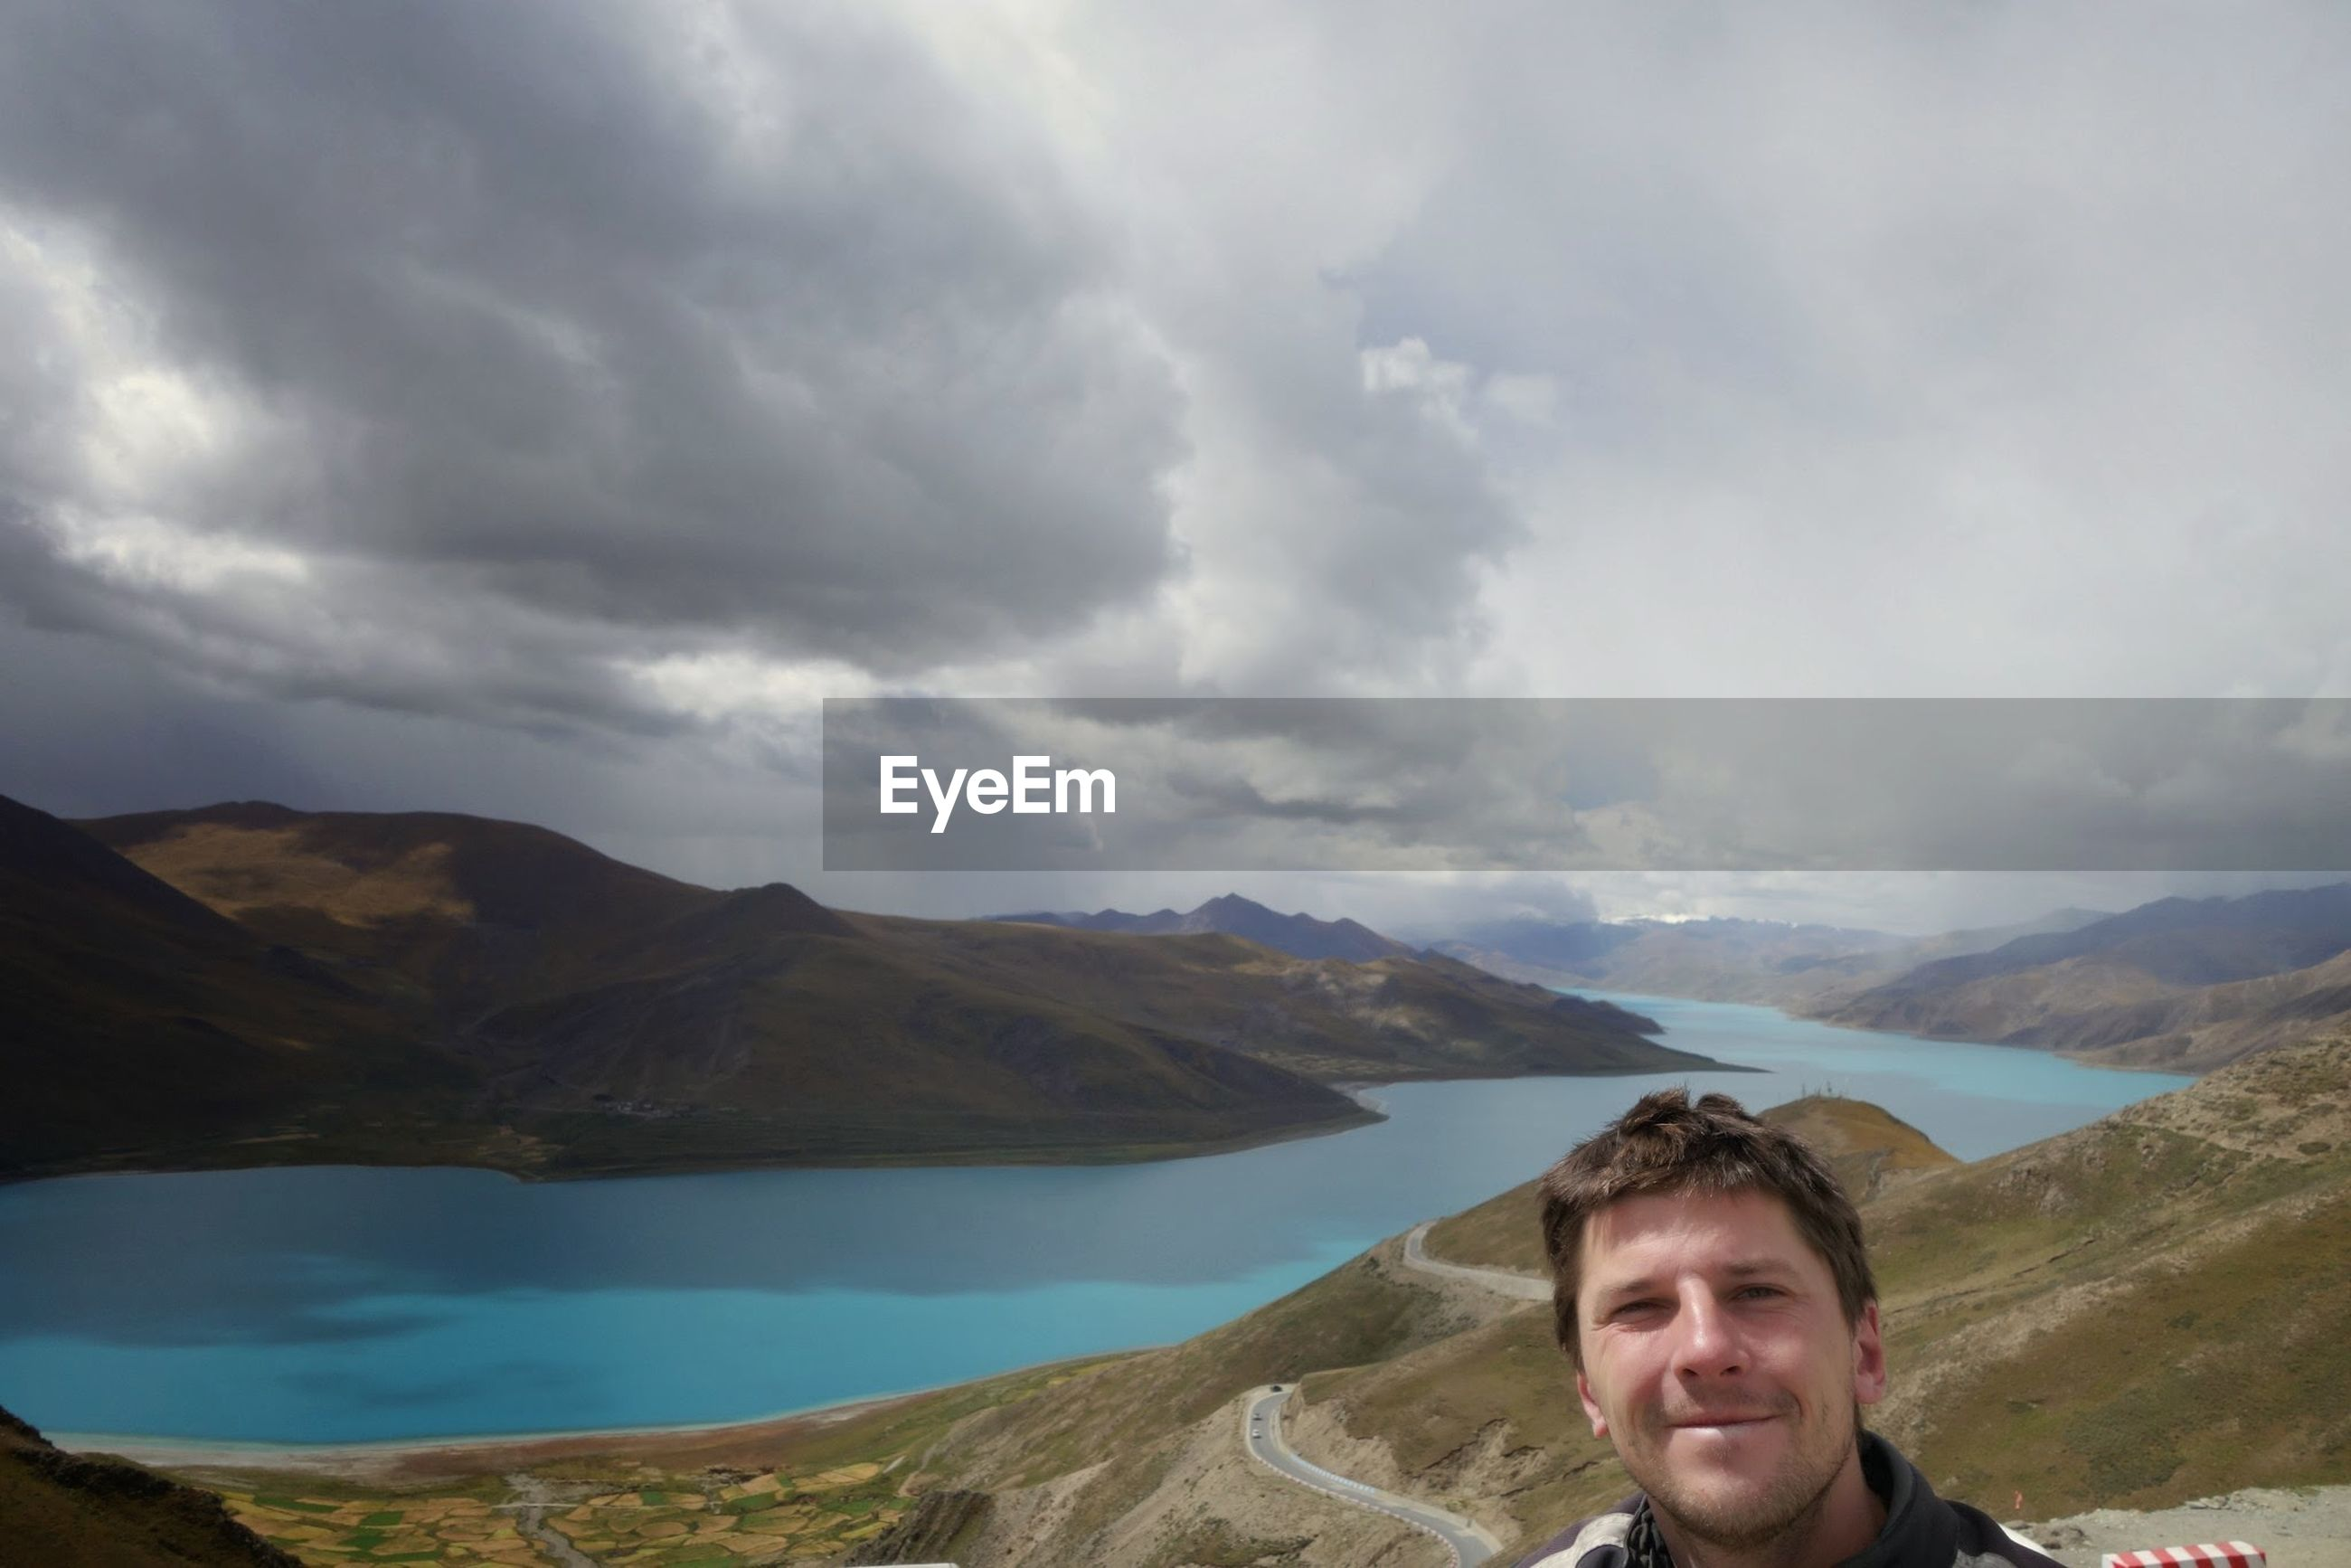 Man on mountain by lake against cloudy sky